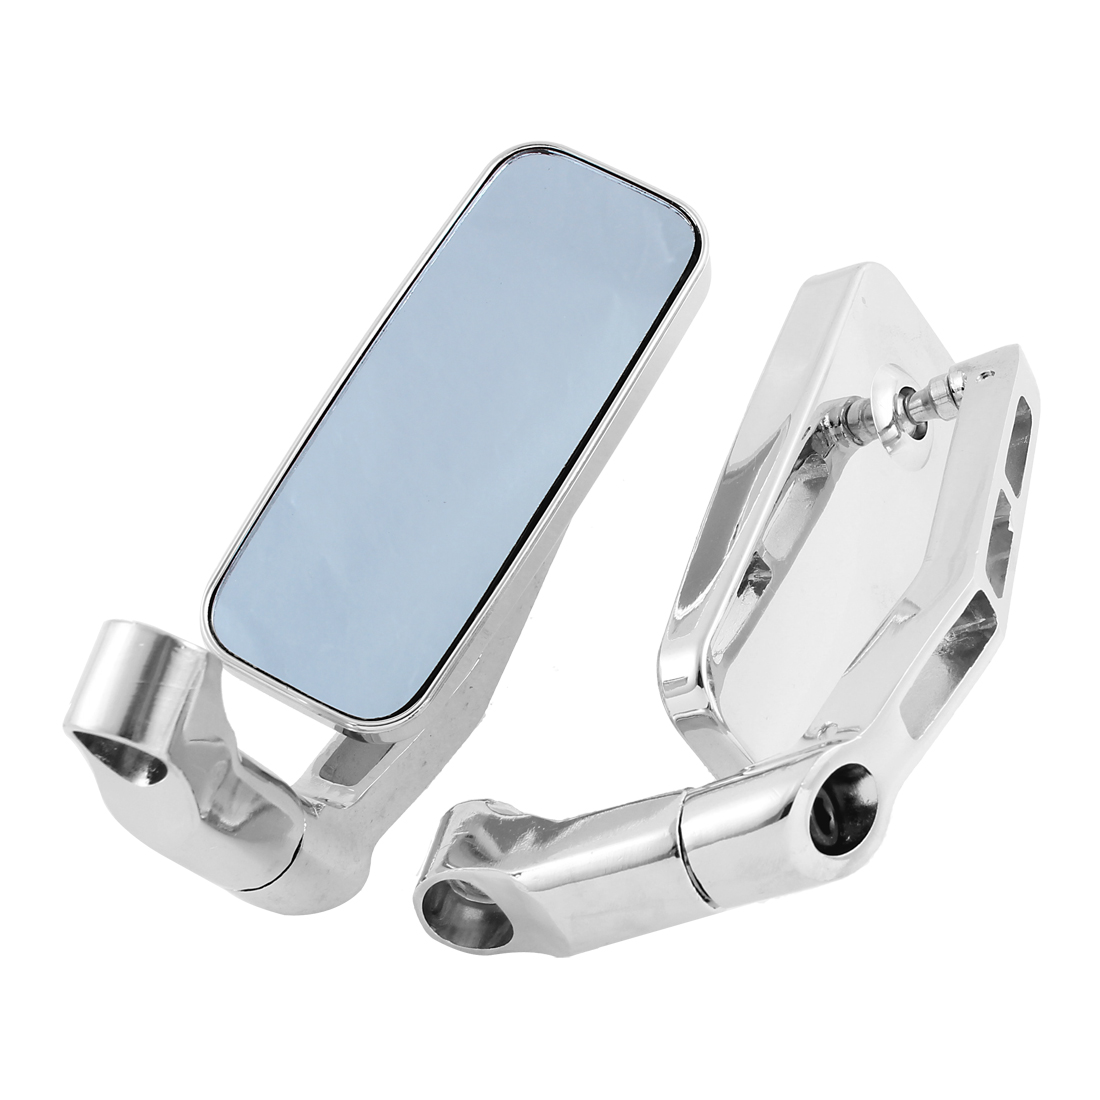 2 Pcs Silver Tone Plastic Shell Motorcycle Side Rearview Blind Spot Mirror